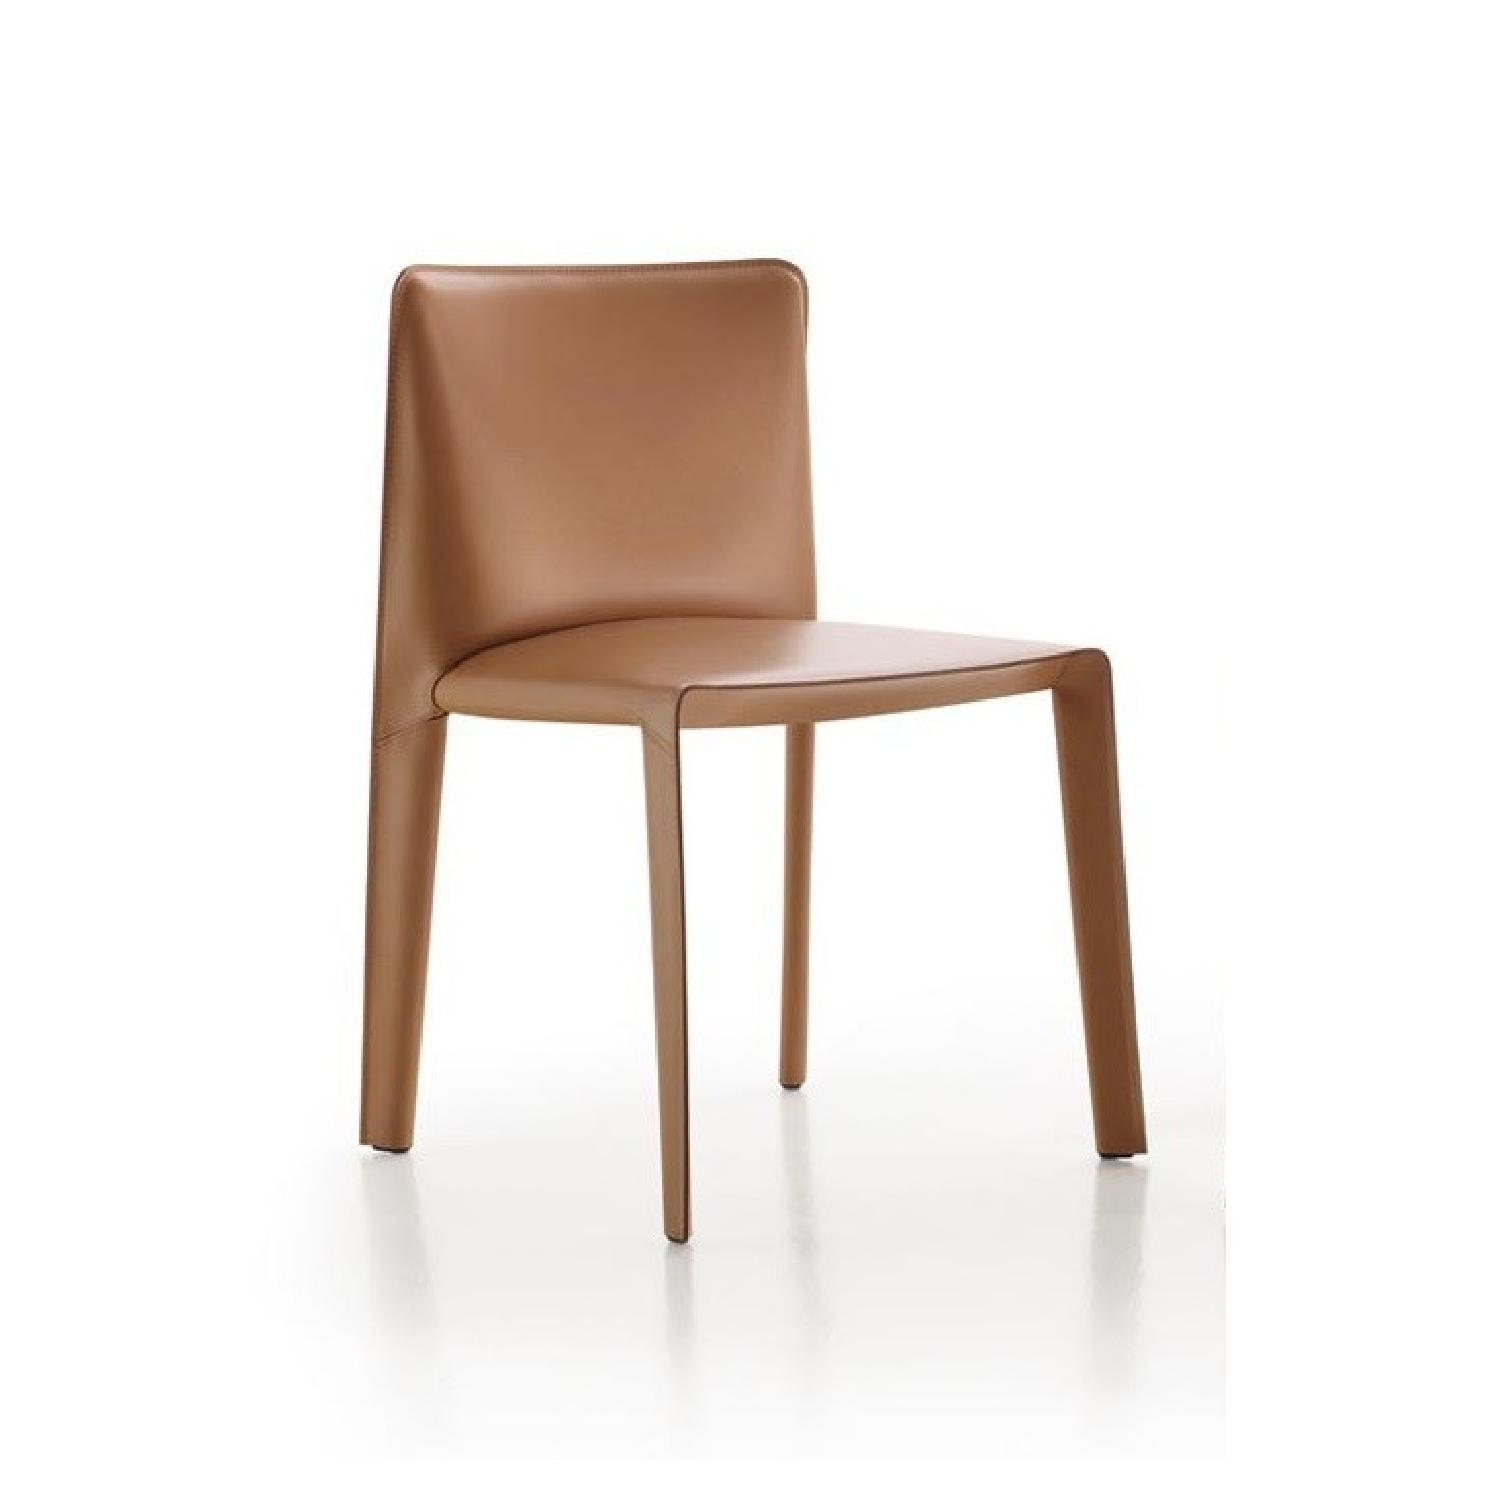 B&B Italia Doyl Dining Chair in Natural Leather